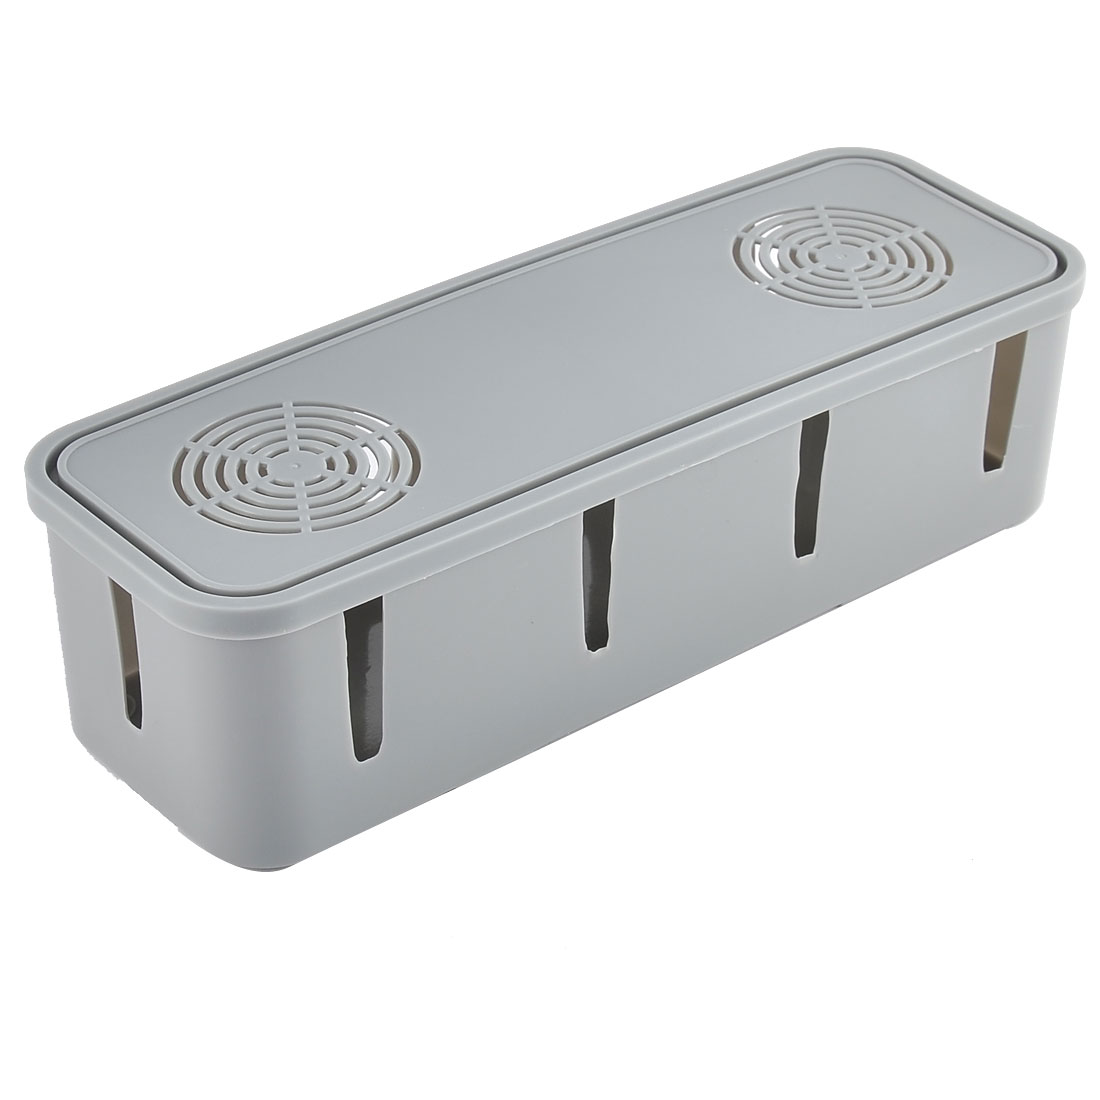 Plastic Rectangle Design Safety Power Wire Socket Storage Case Box w Lid Gray